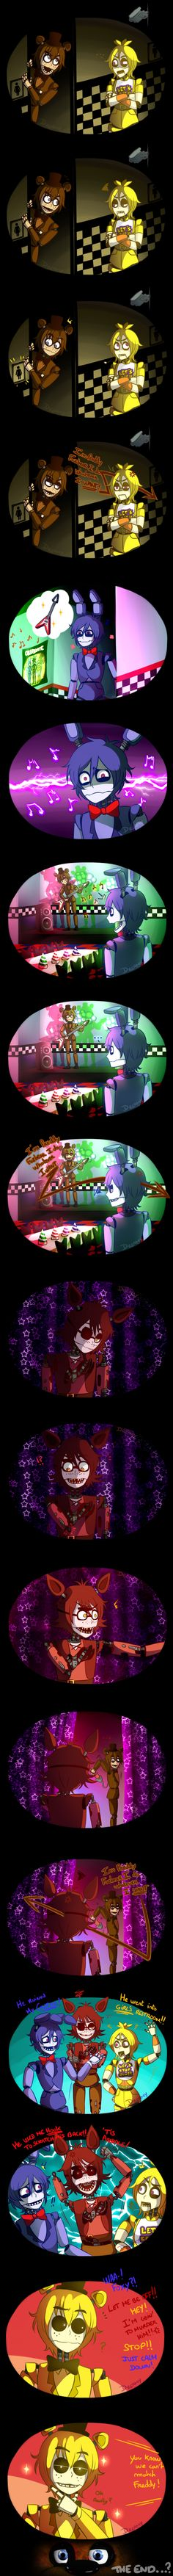 Imma Freddy Fuzebear Madafaka by YumeChii-NI on DeviantArt